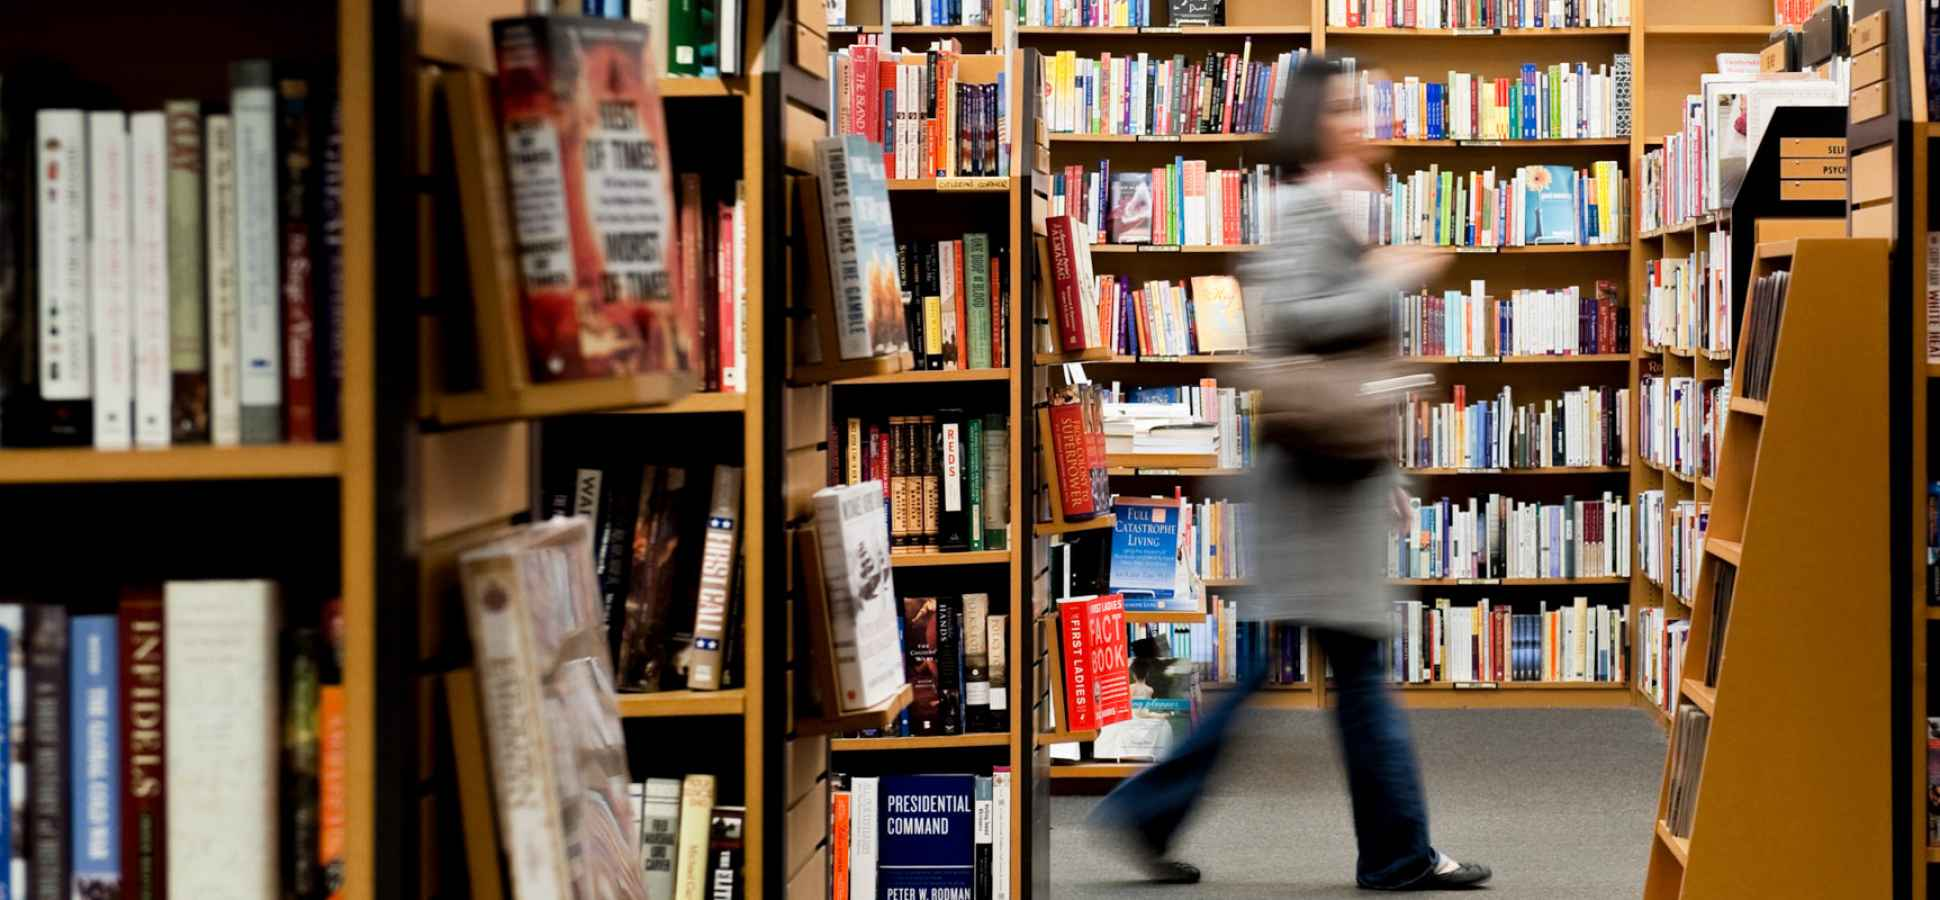 5 Fascinating Books You Should Add to Your Personal Library